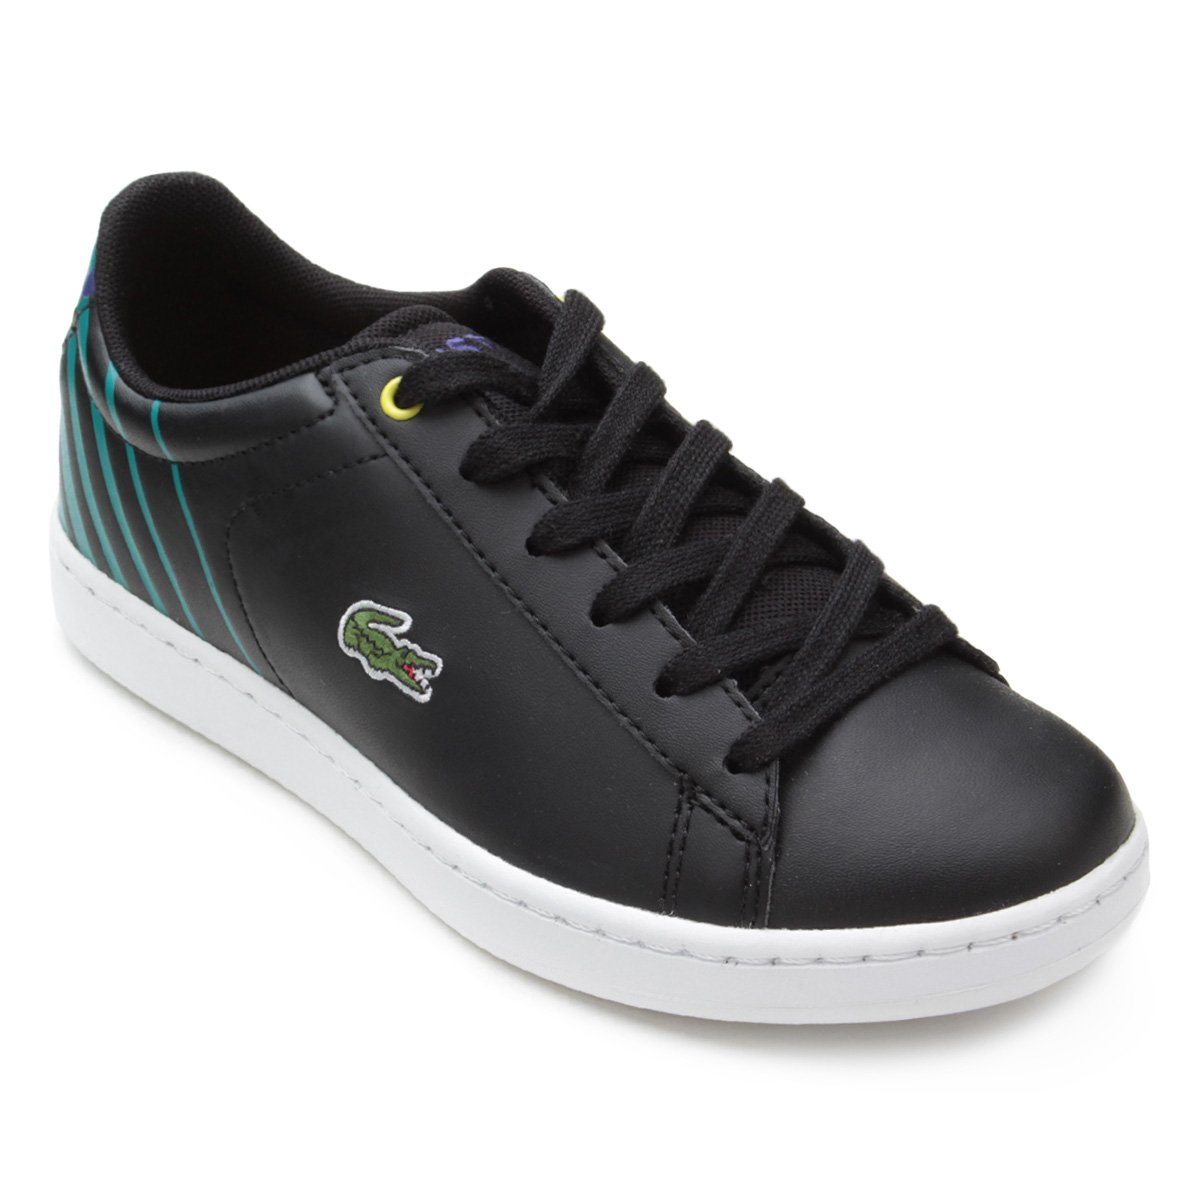 f1ab93a2ef3 Tênis Infantil Lacoste Carnaby Evo Masculino. undefined